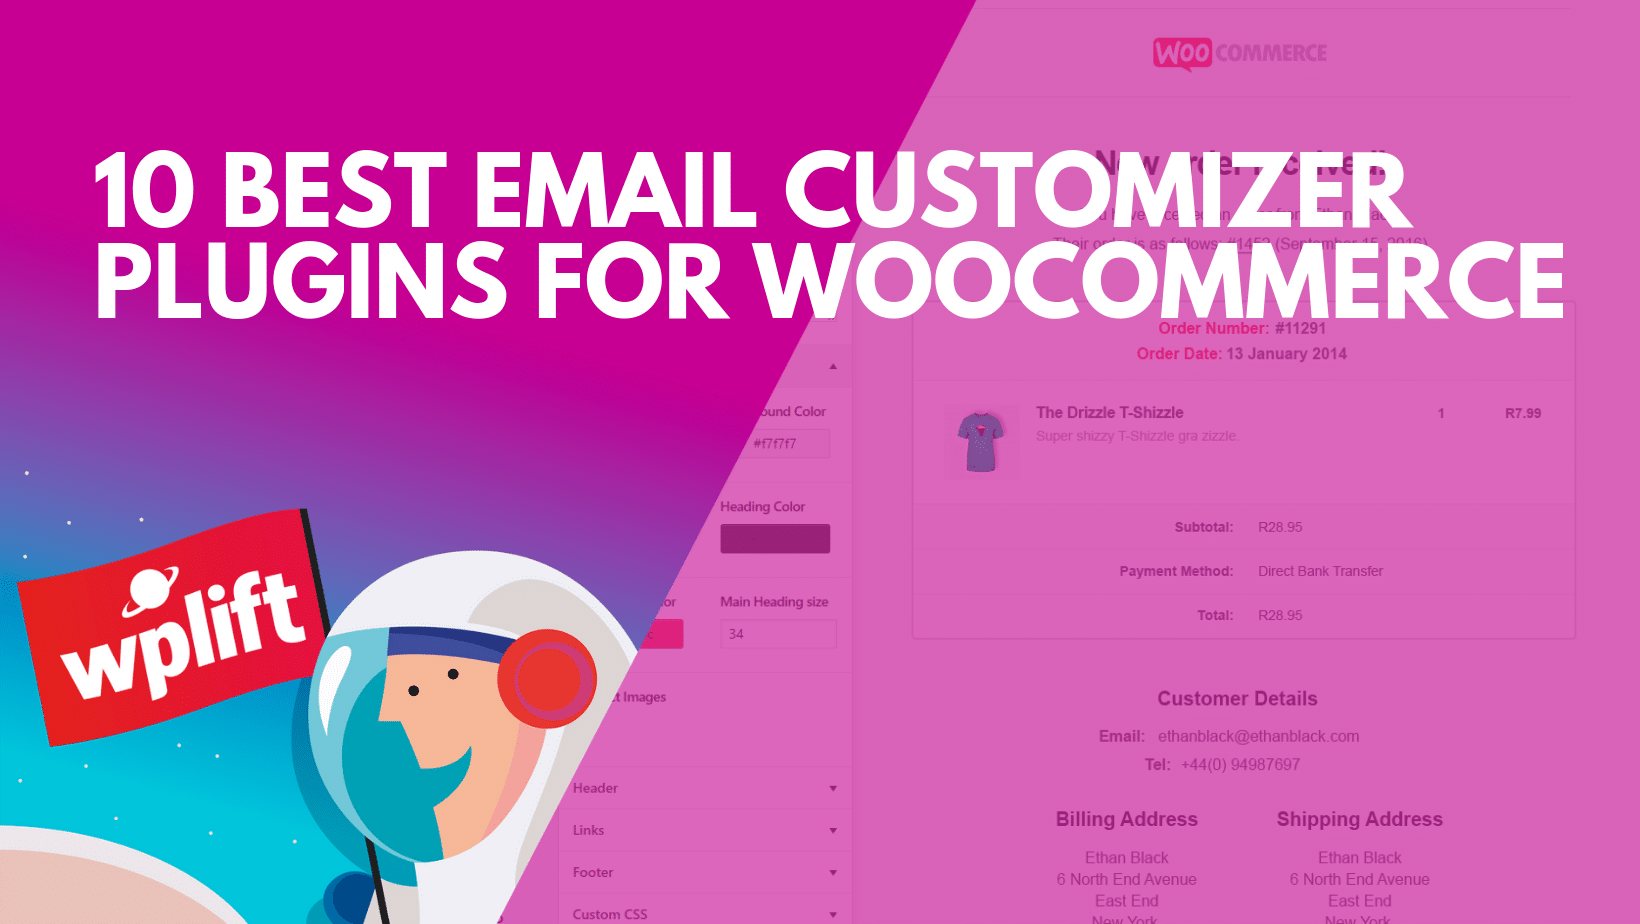 Top 10 Email Customizer Plugins for WooCommerce